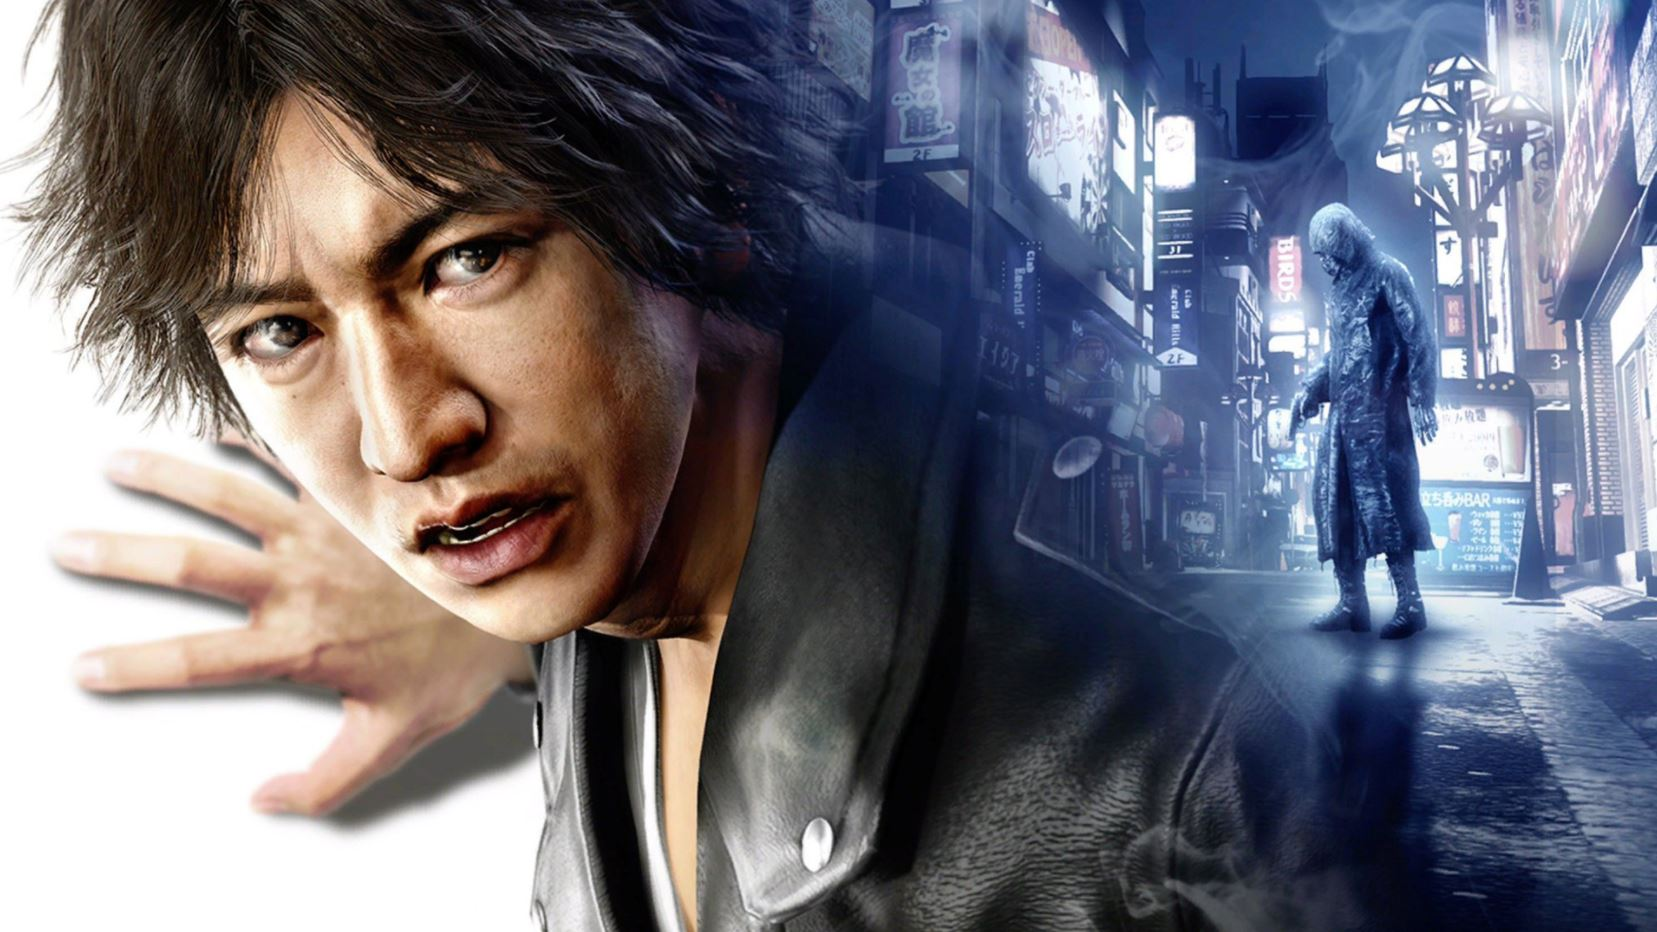 judgment-gets-a-remaster-for-ps5-on-april-23-with-all-dlc-improved-load-times-running-at-60-fps